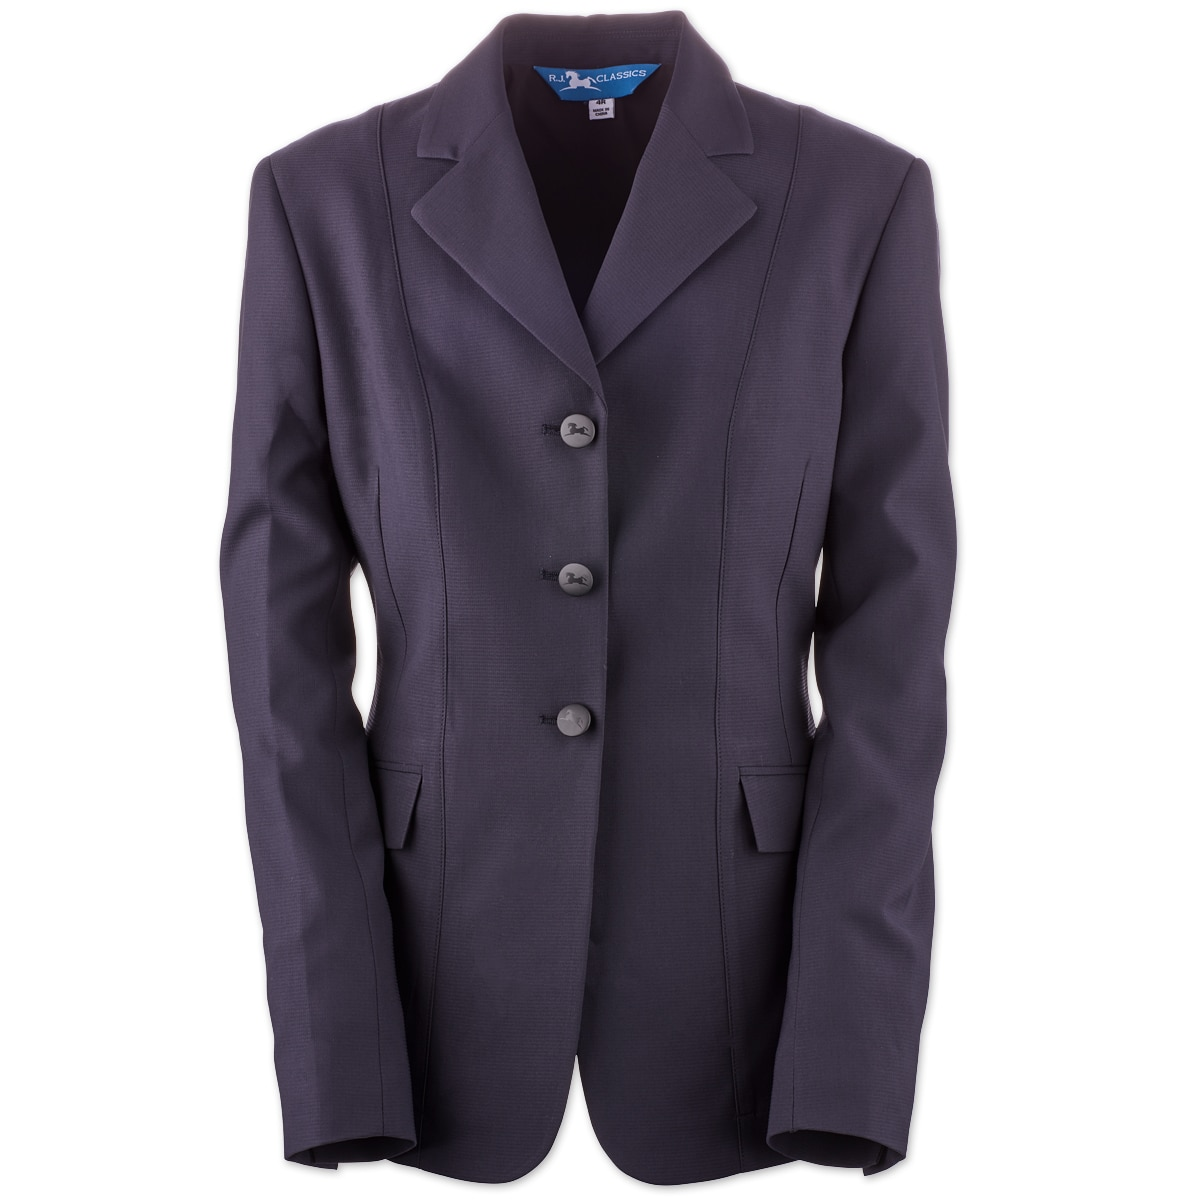 RJ Classics Sydney Blue Label Softshell Show Coat